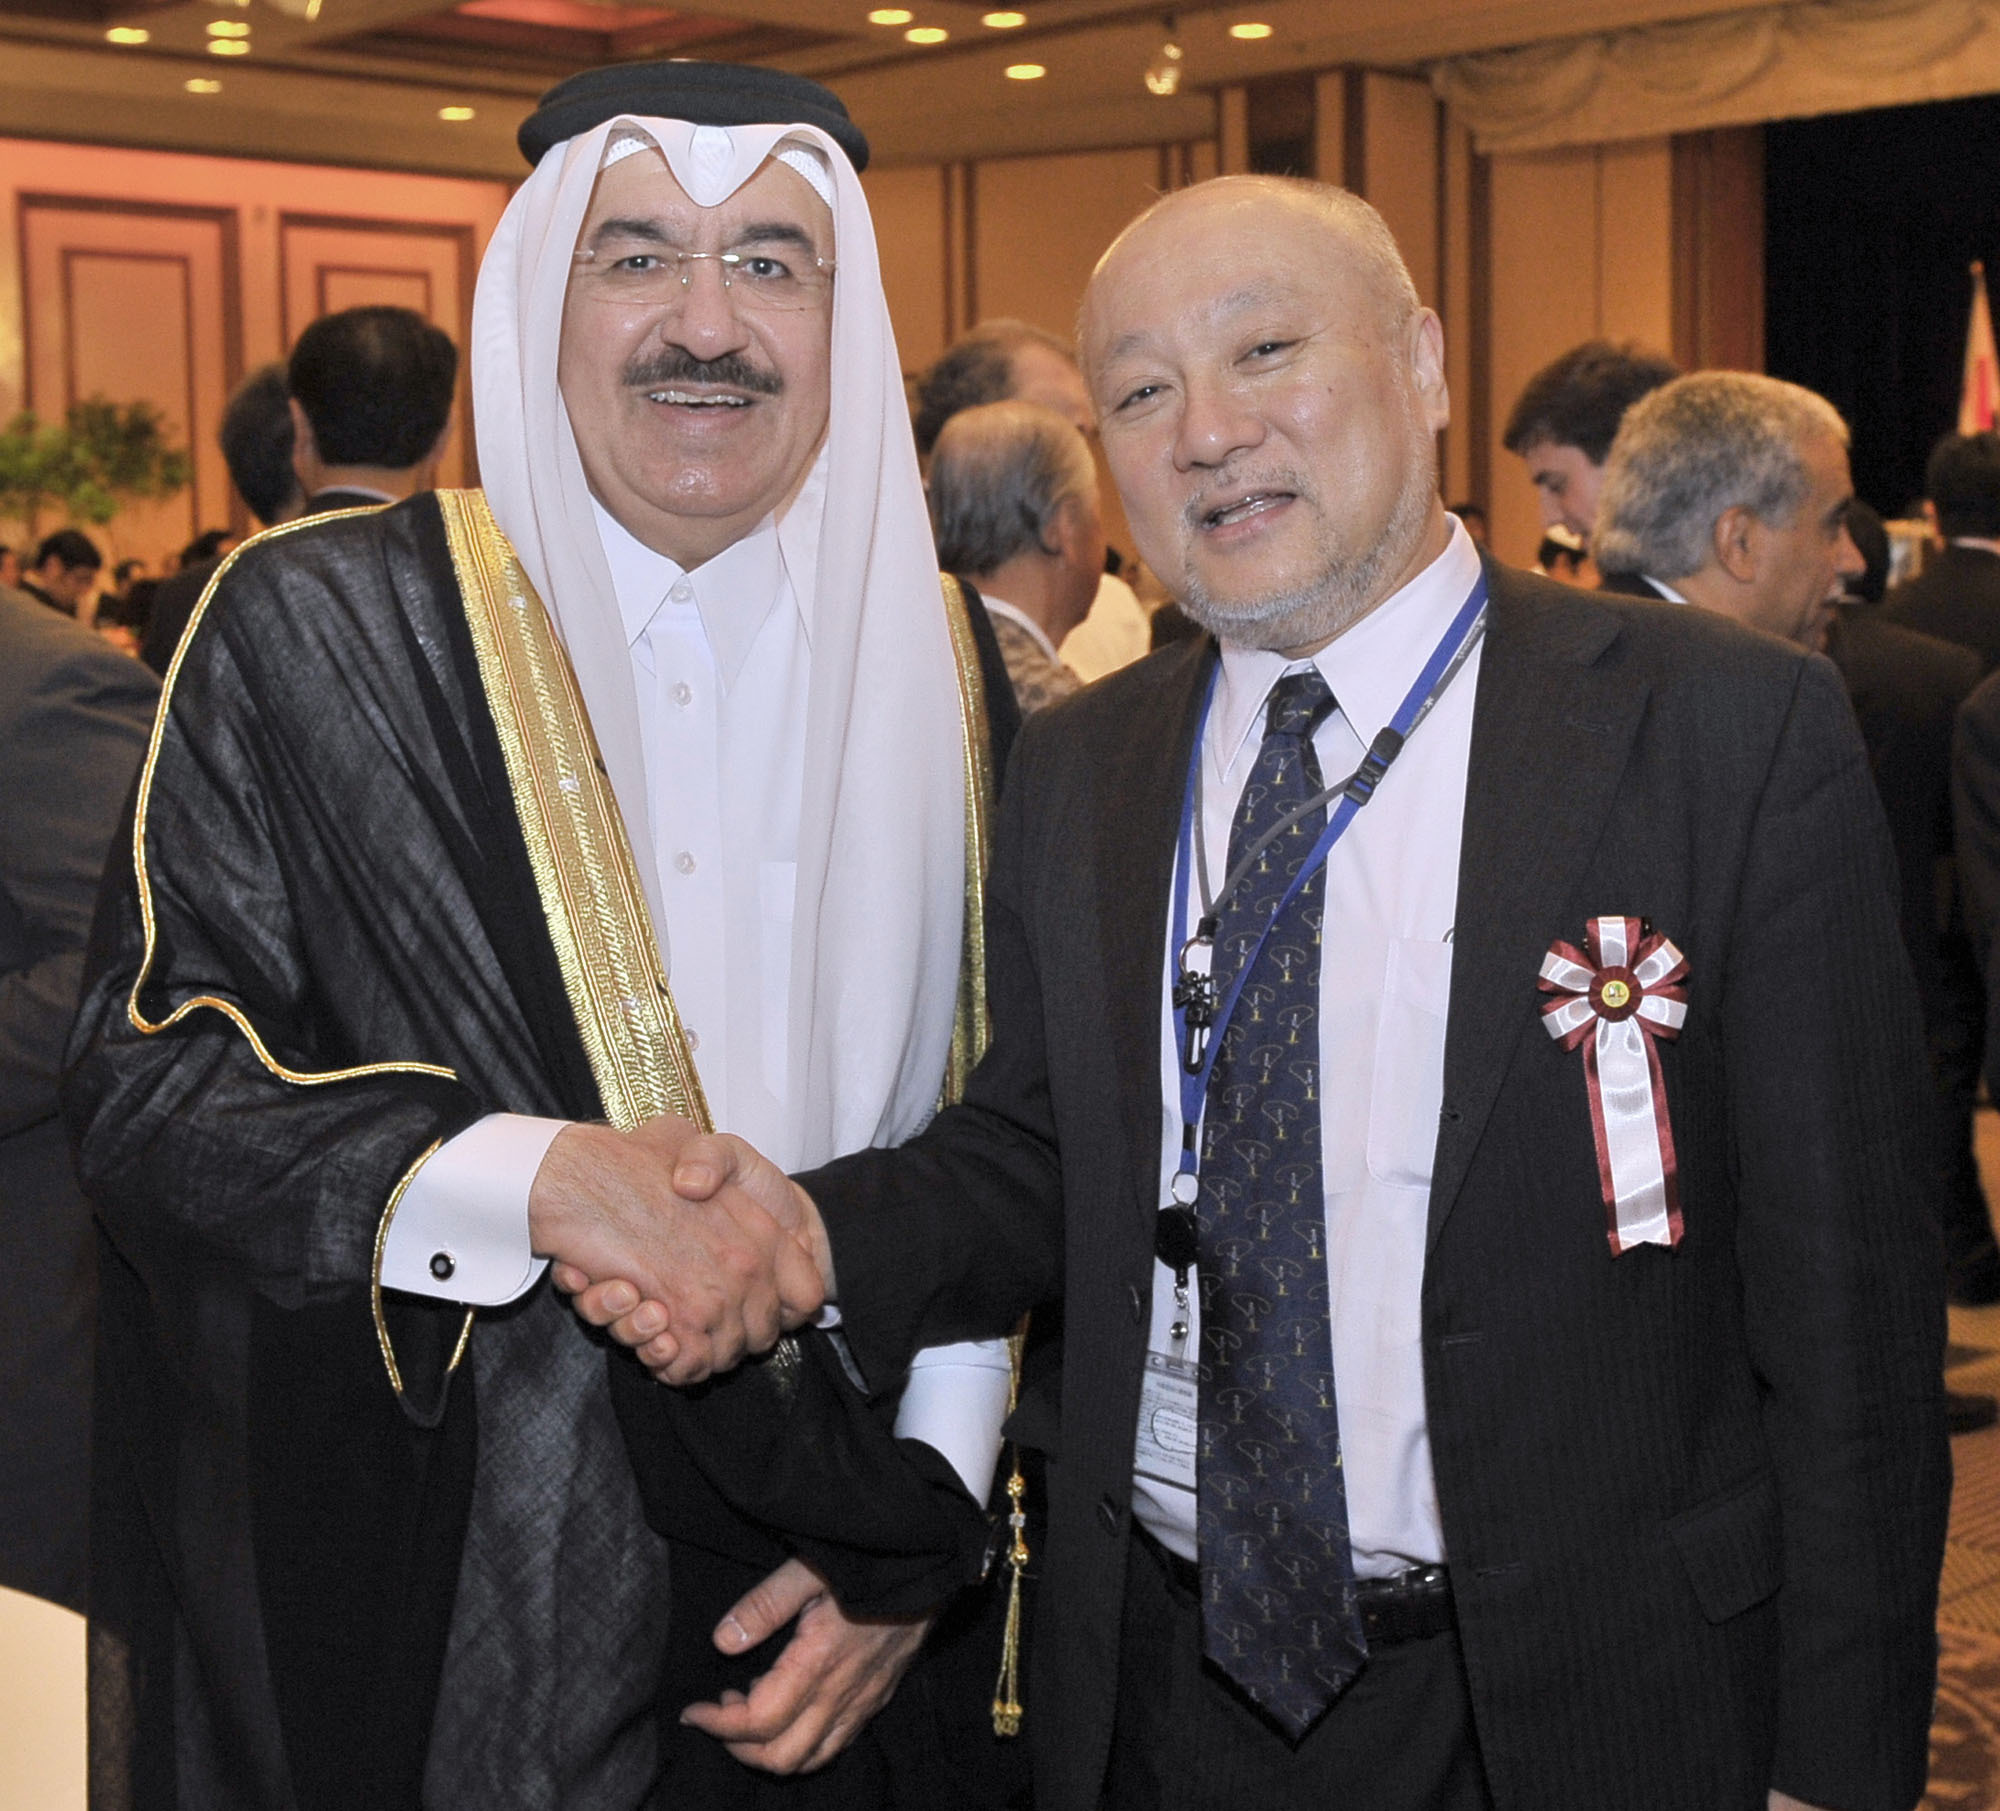 Qatar's Ambassador Yousef Mohamed Bilal (left) greets the Ministry of Foreign Affairs Director-General of the Middle Eastern and African Affairs Bureau Tsukasa Uemura at a reception to celebrate the National Day of the State of Qatar at the Imperial Hotel, Tokyo, on Dec. 13. | YOSHIAKI MIURA